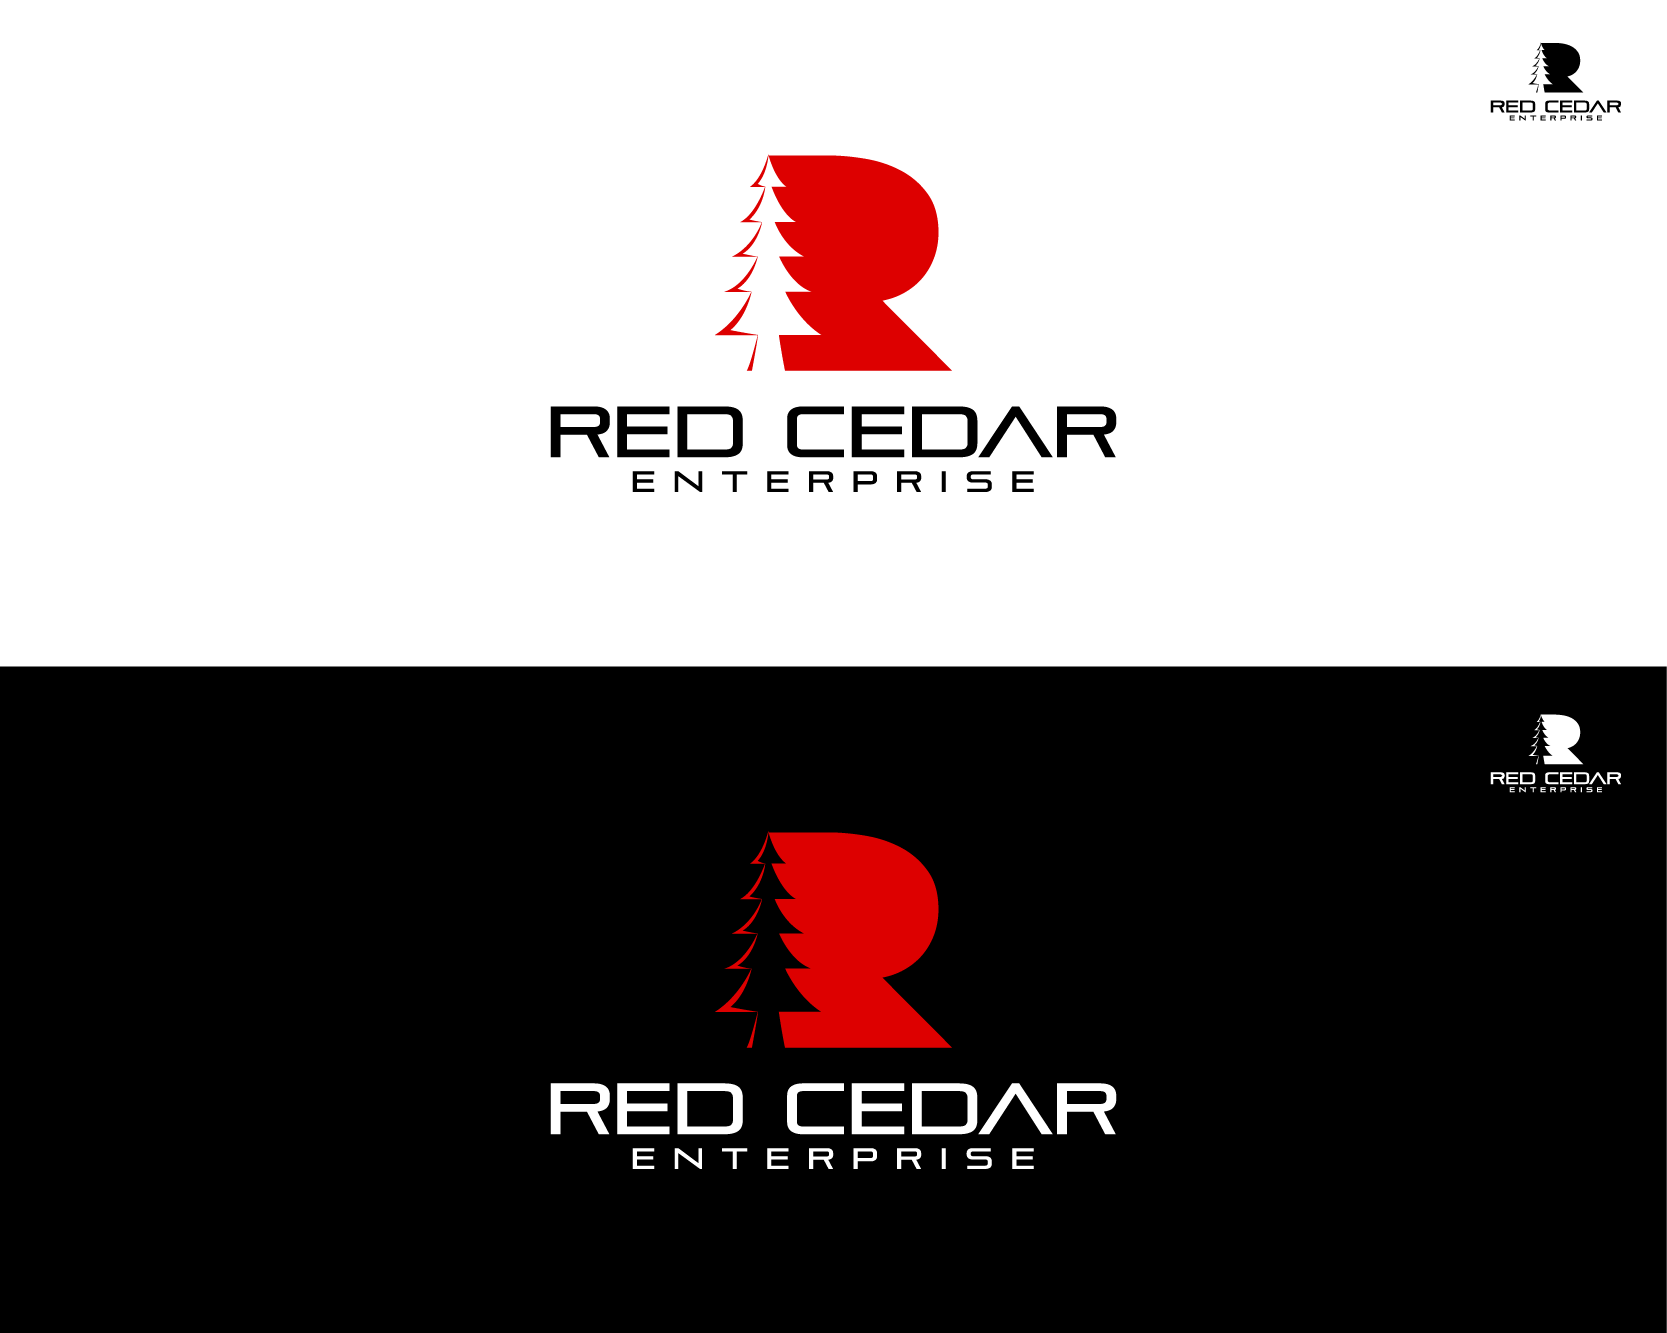 Logo Design by Shivaprasad Sangondimath - Entry No. 109 in the Logo Design Contest Unique Logo Design Wanted for Red Cedar Enterprise.